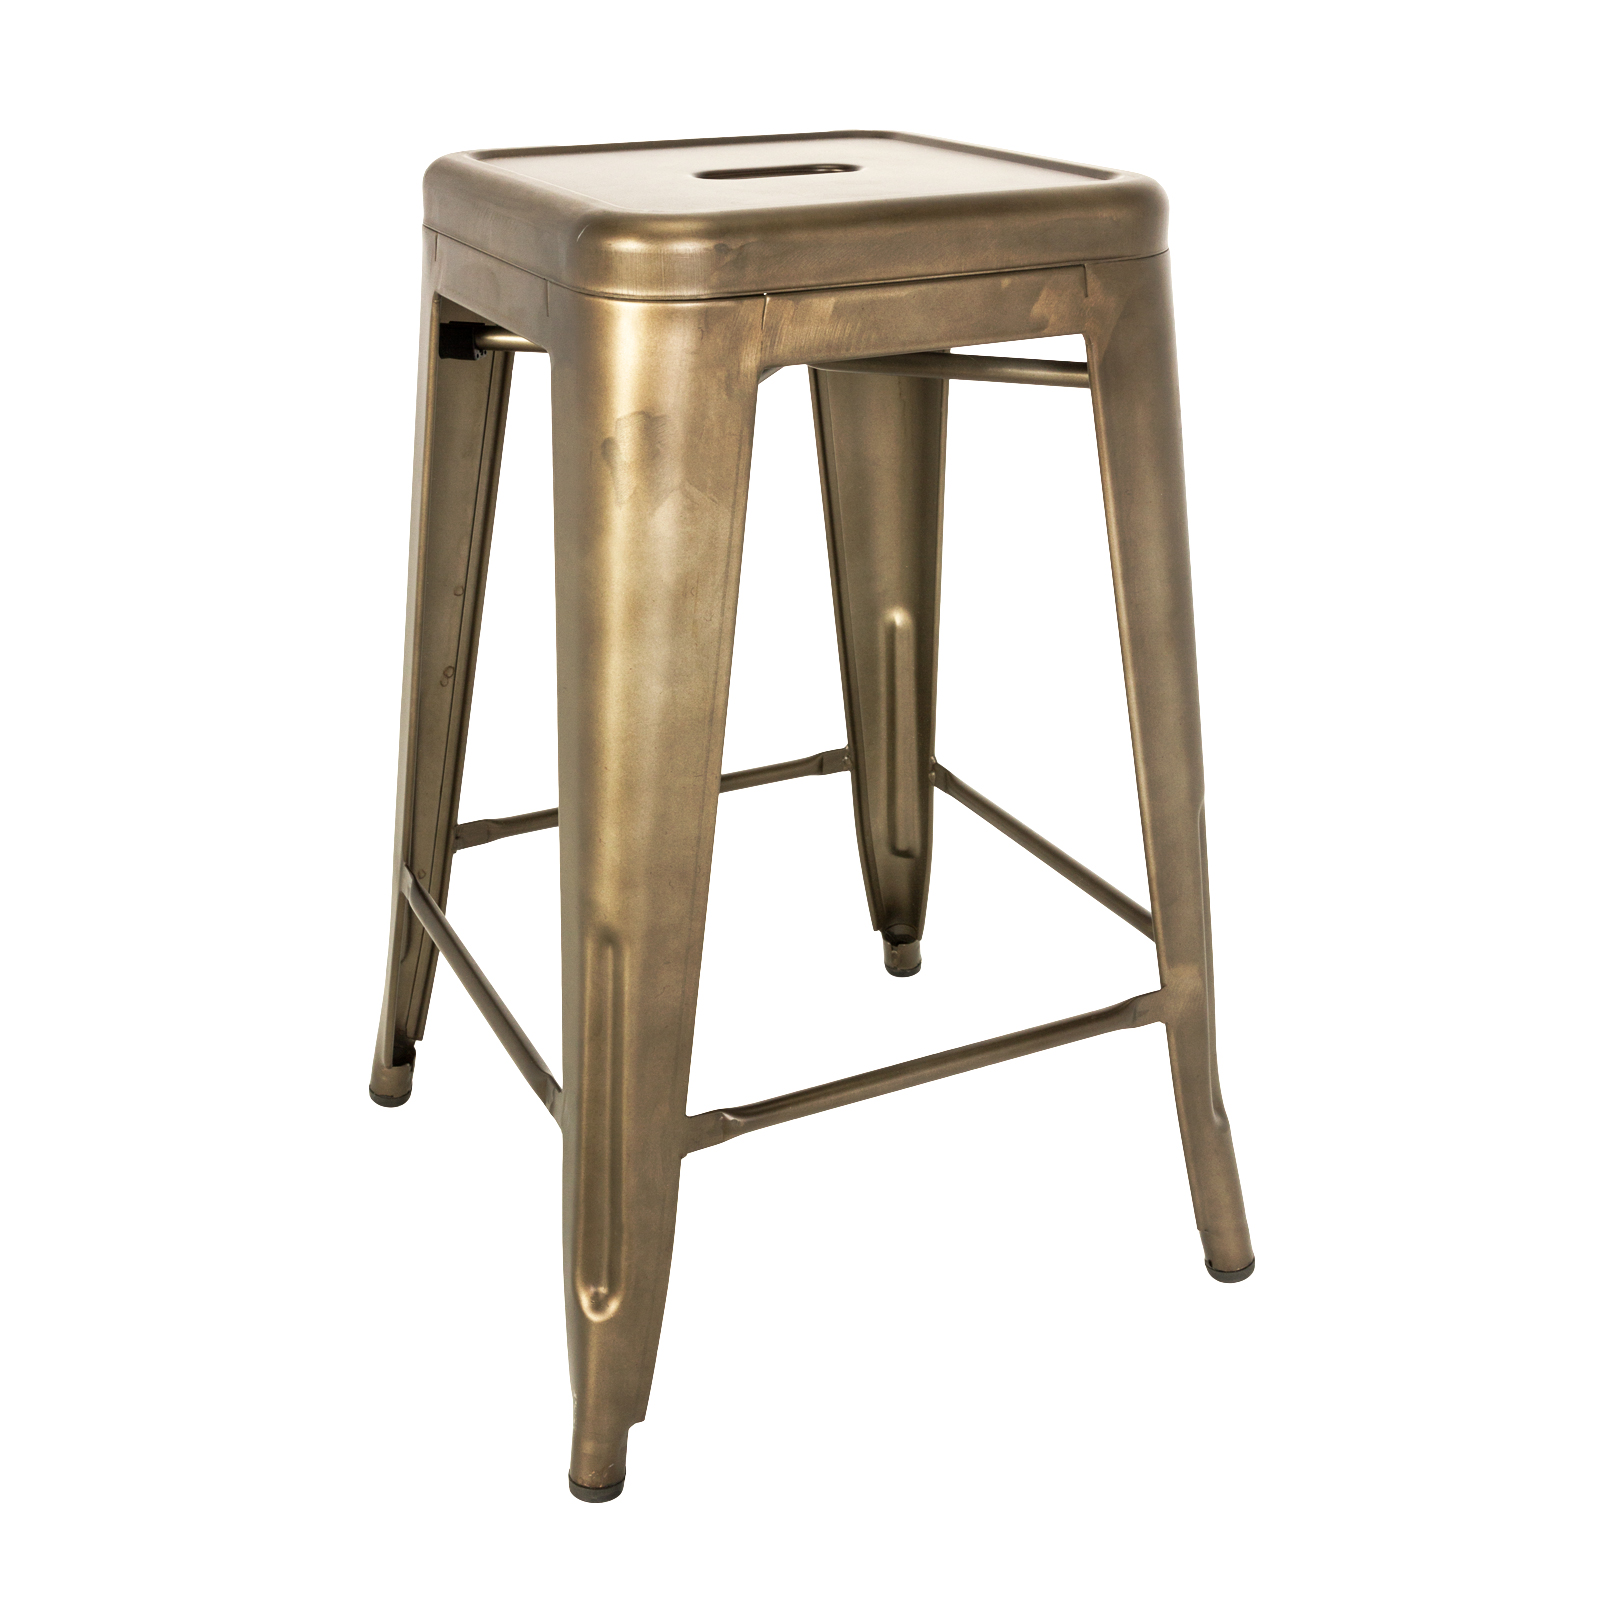 stool chair rentals florida gators leather office tabouret counter rental event furniture